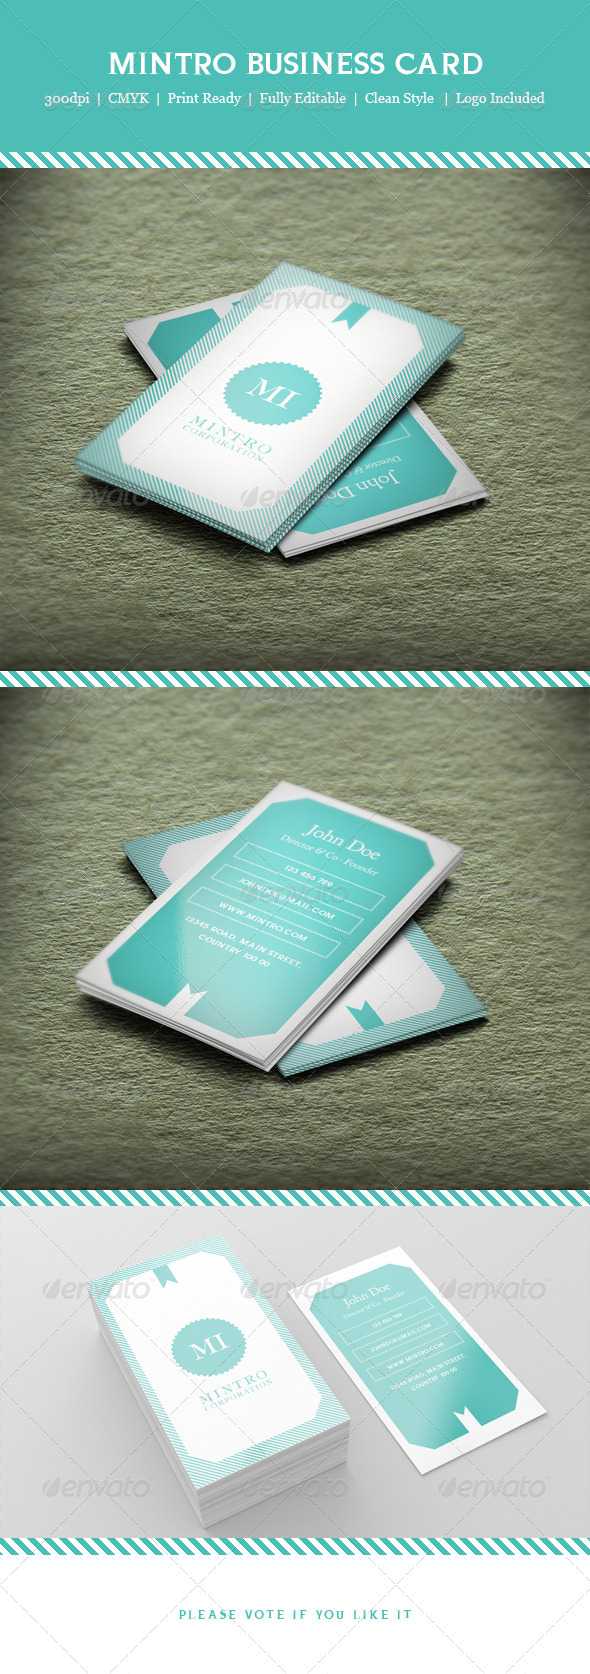 GraphicRiver Mintro Business Card 4837462